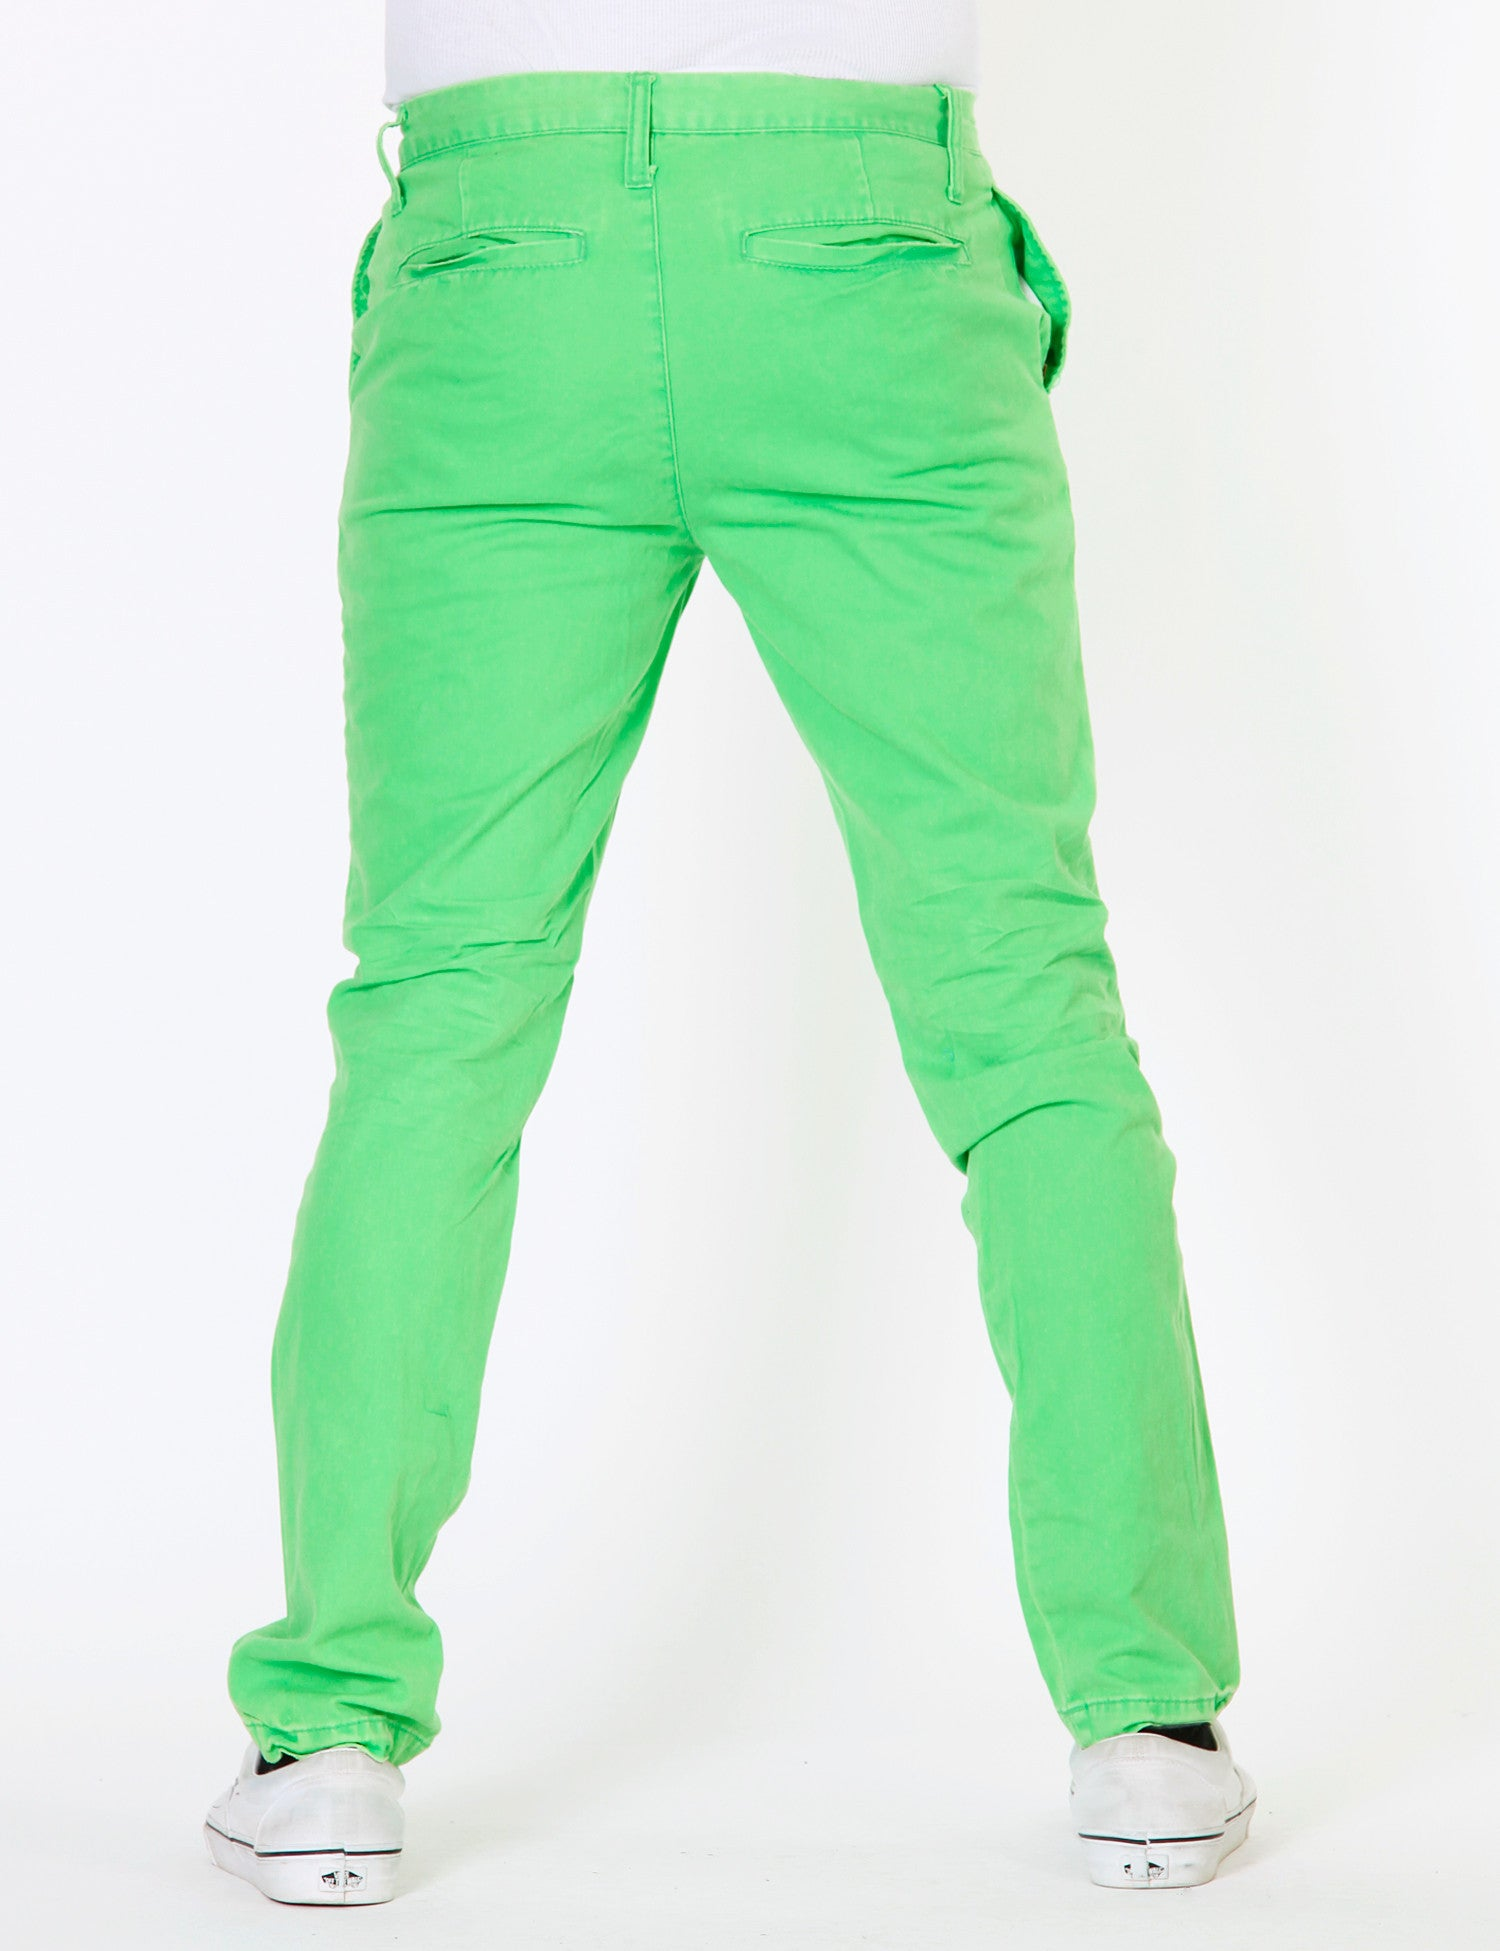 8011SK Jeans Green